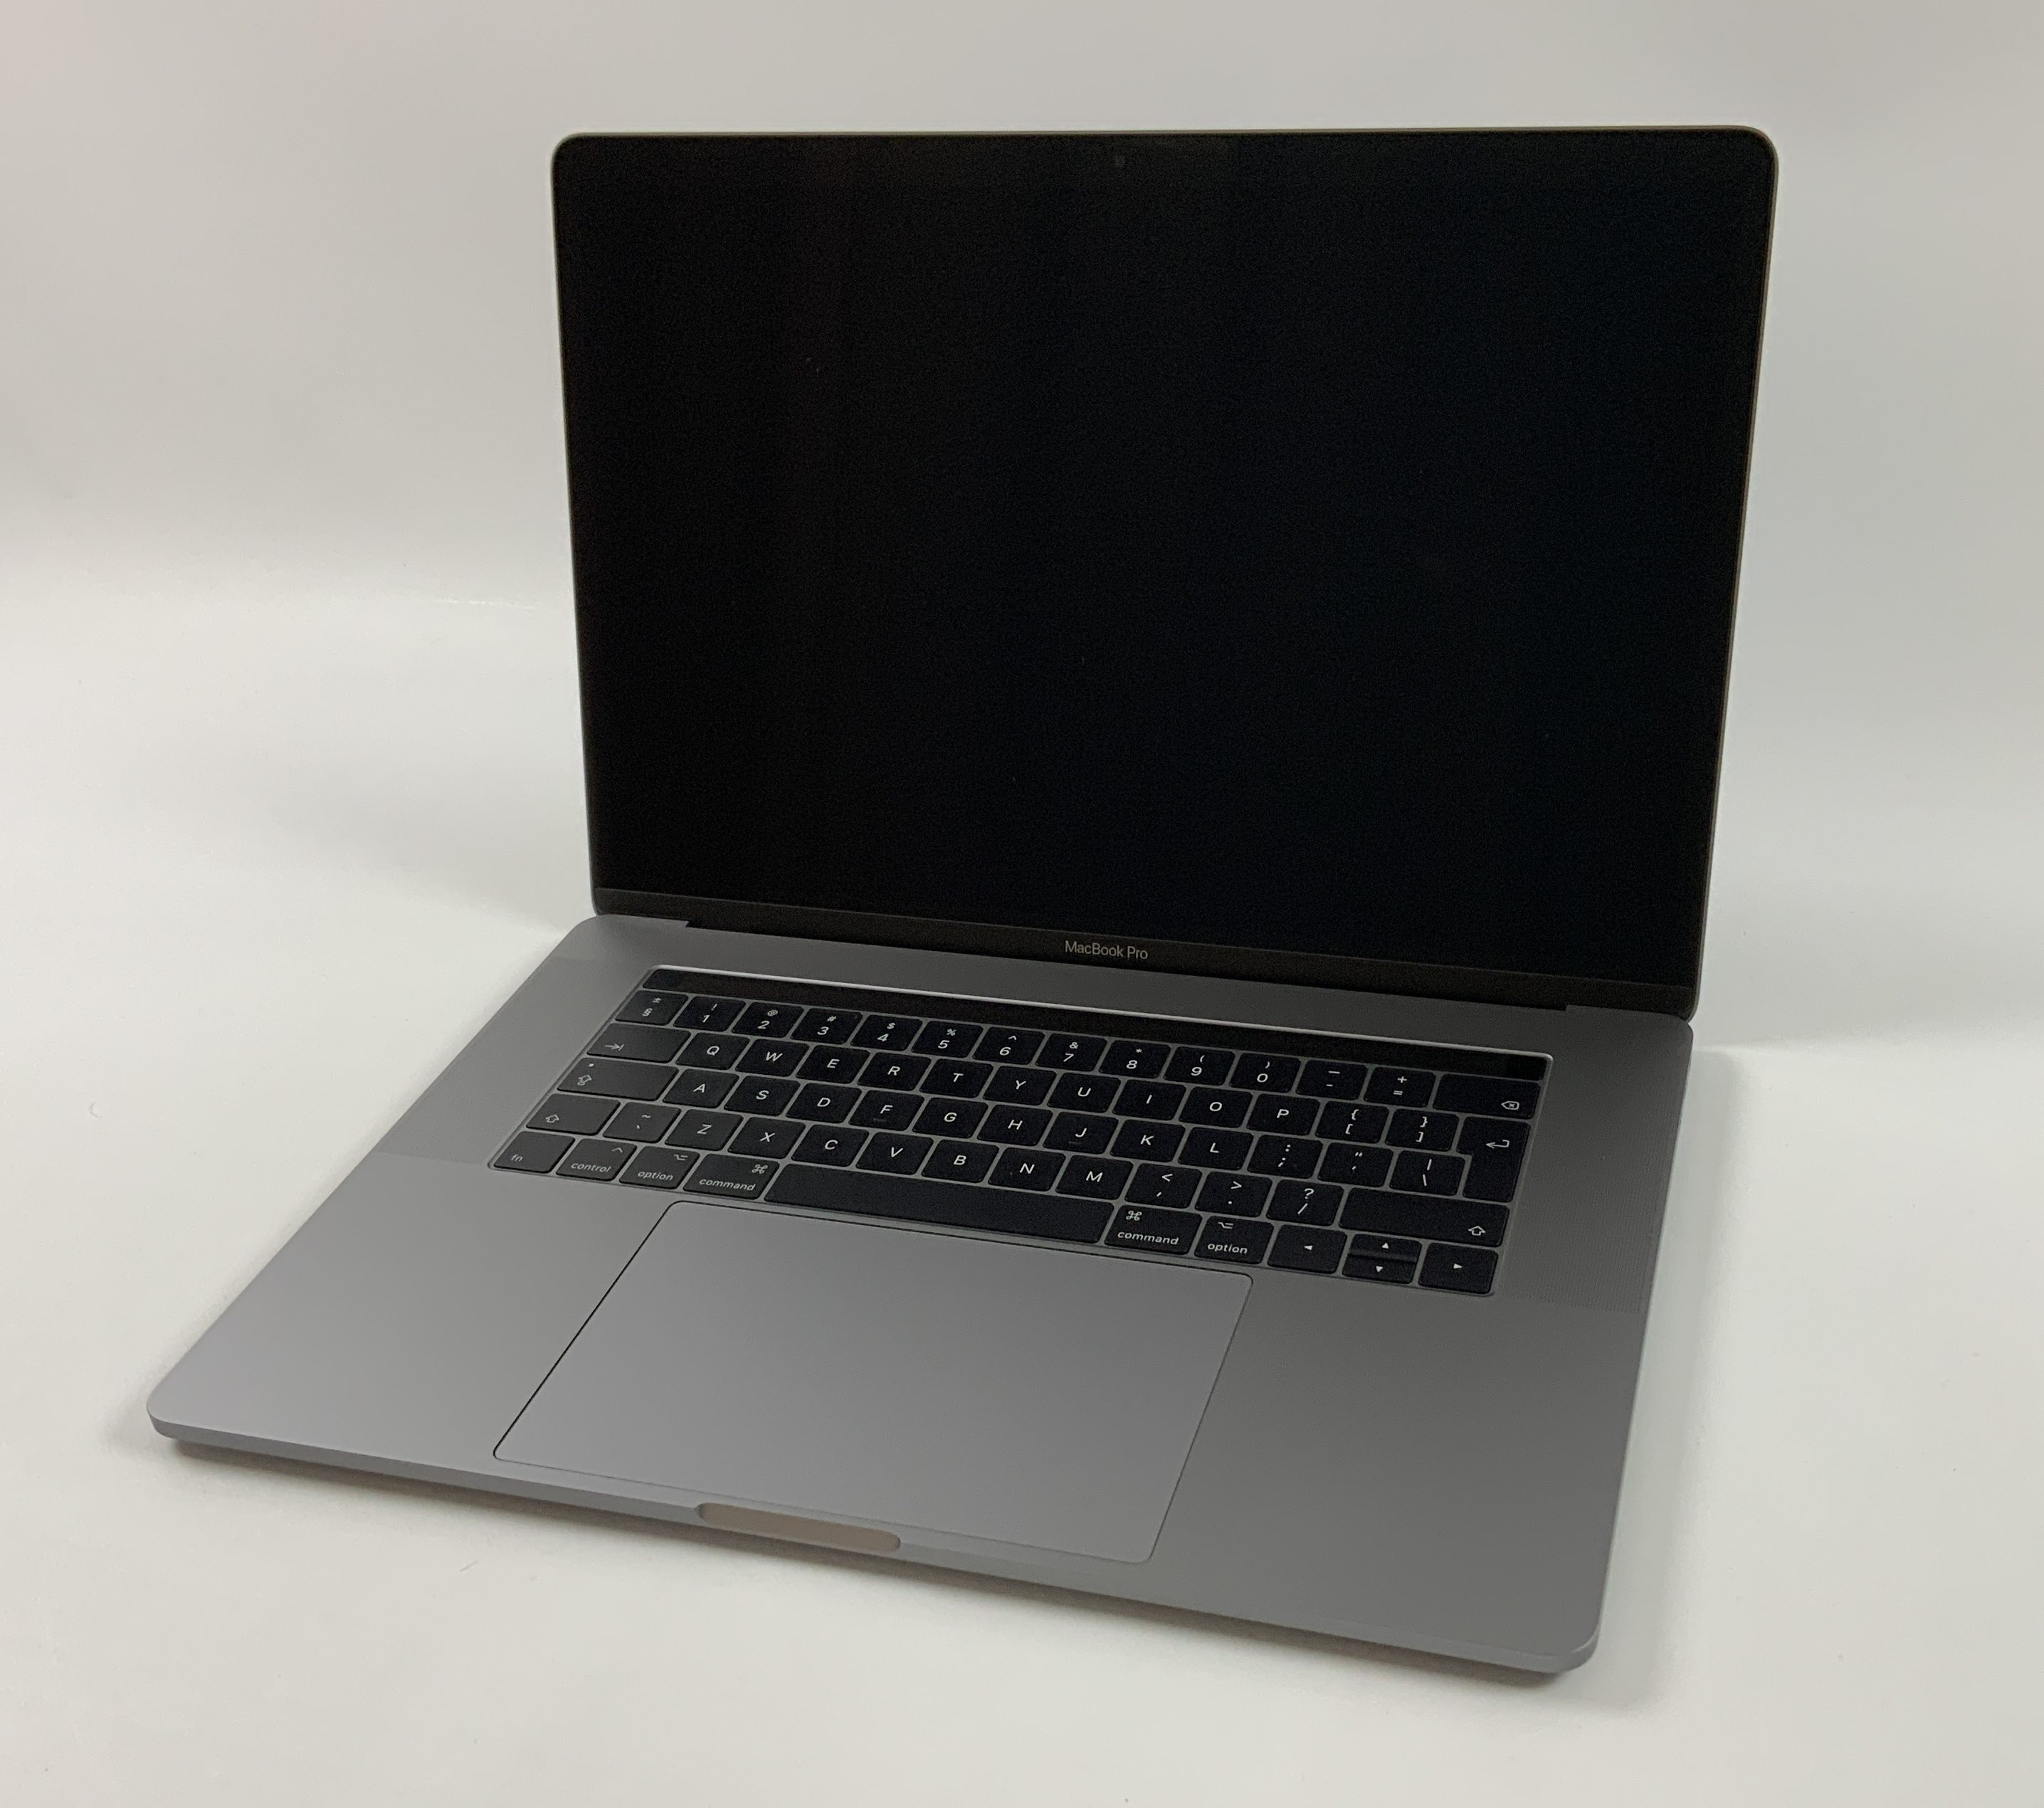 "MacBook Pro 15"" Touch Bar Mid 2017 (Intel Quad-Core i7 3.1 GHz 16 GB RAM 2 TB SSD), Space Gray, Intel Quad-Core i7 3.1 GHz, 16 GB RAM, 2 TB SSD, Afbeelding 1"